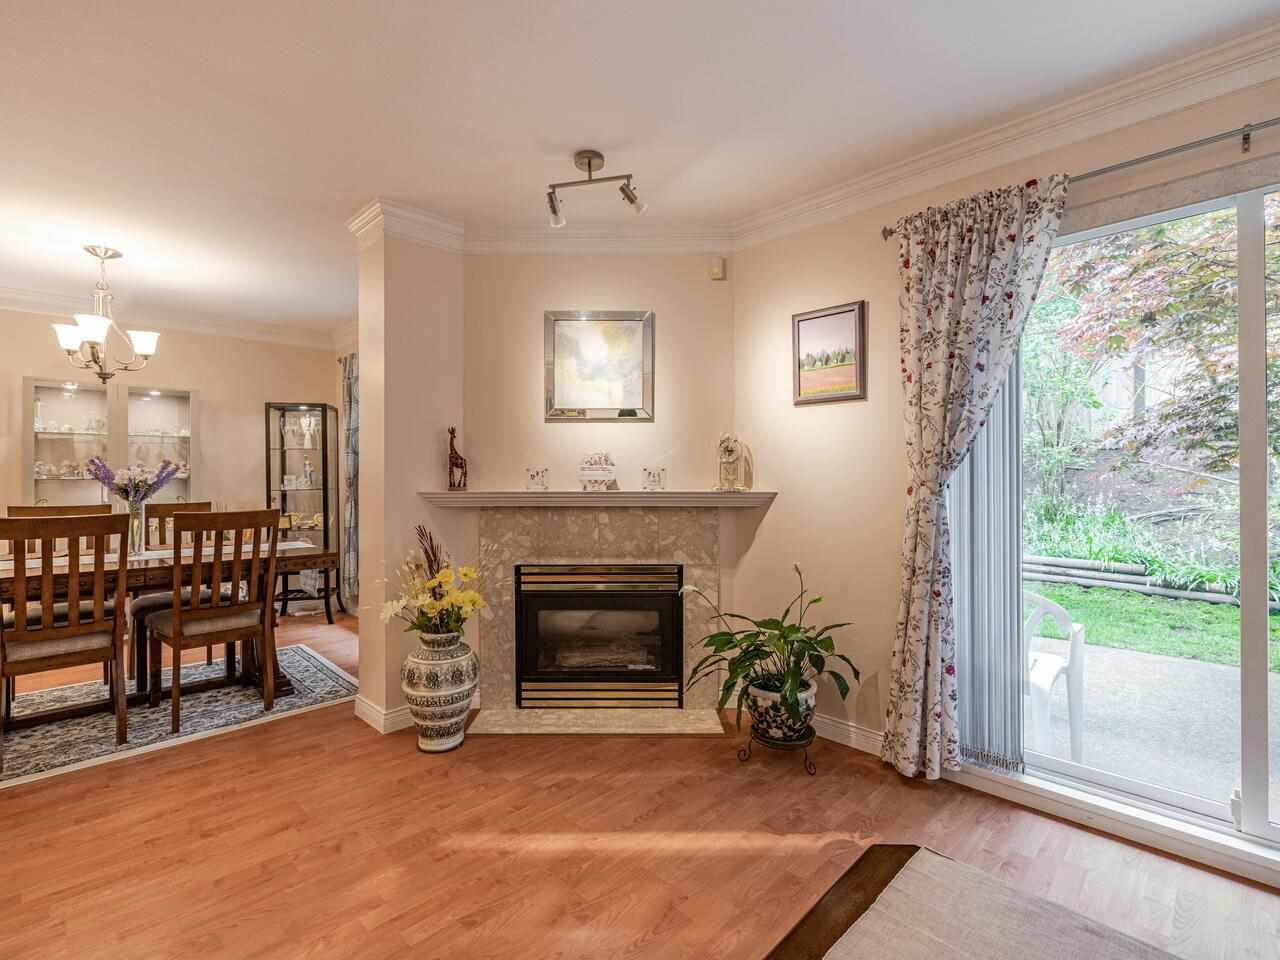 11 15875 84 AVE AVENUE - Fleetwood Tynehead Townhouse for sale, 3 Bedrooms (R2574652) - #3